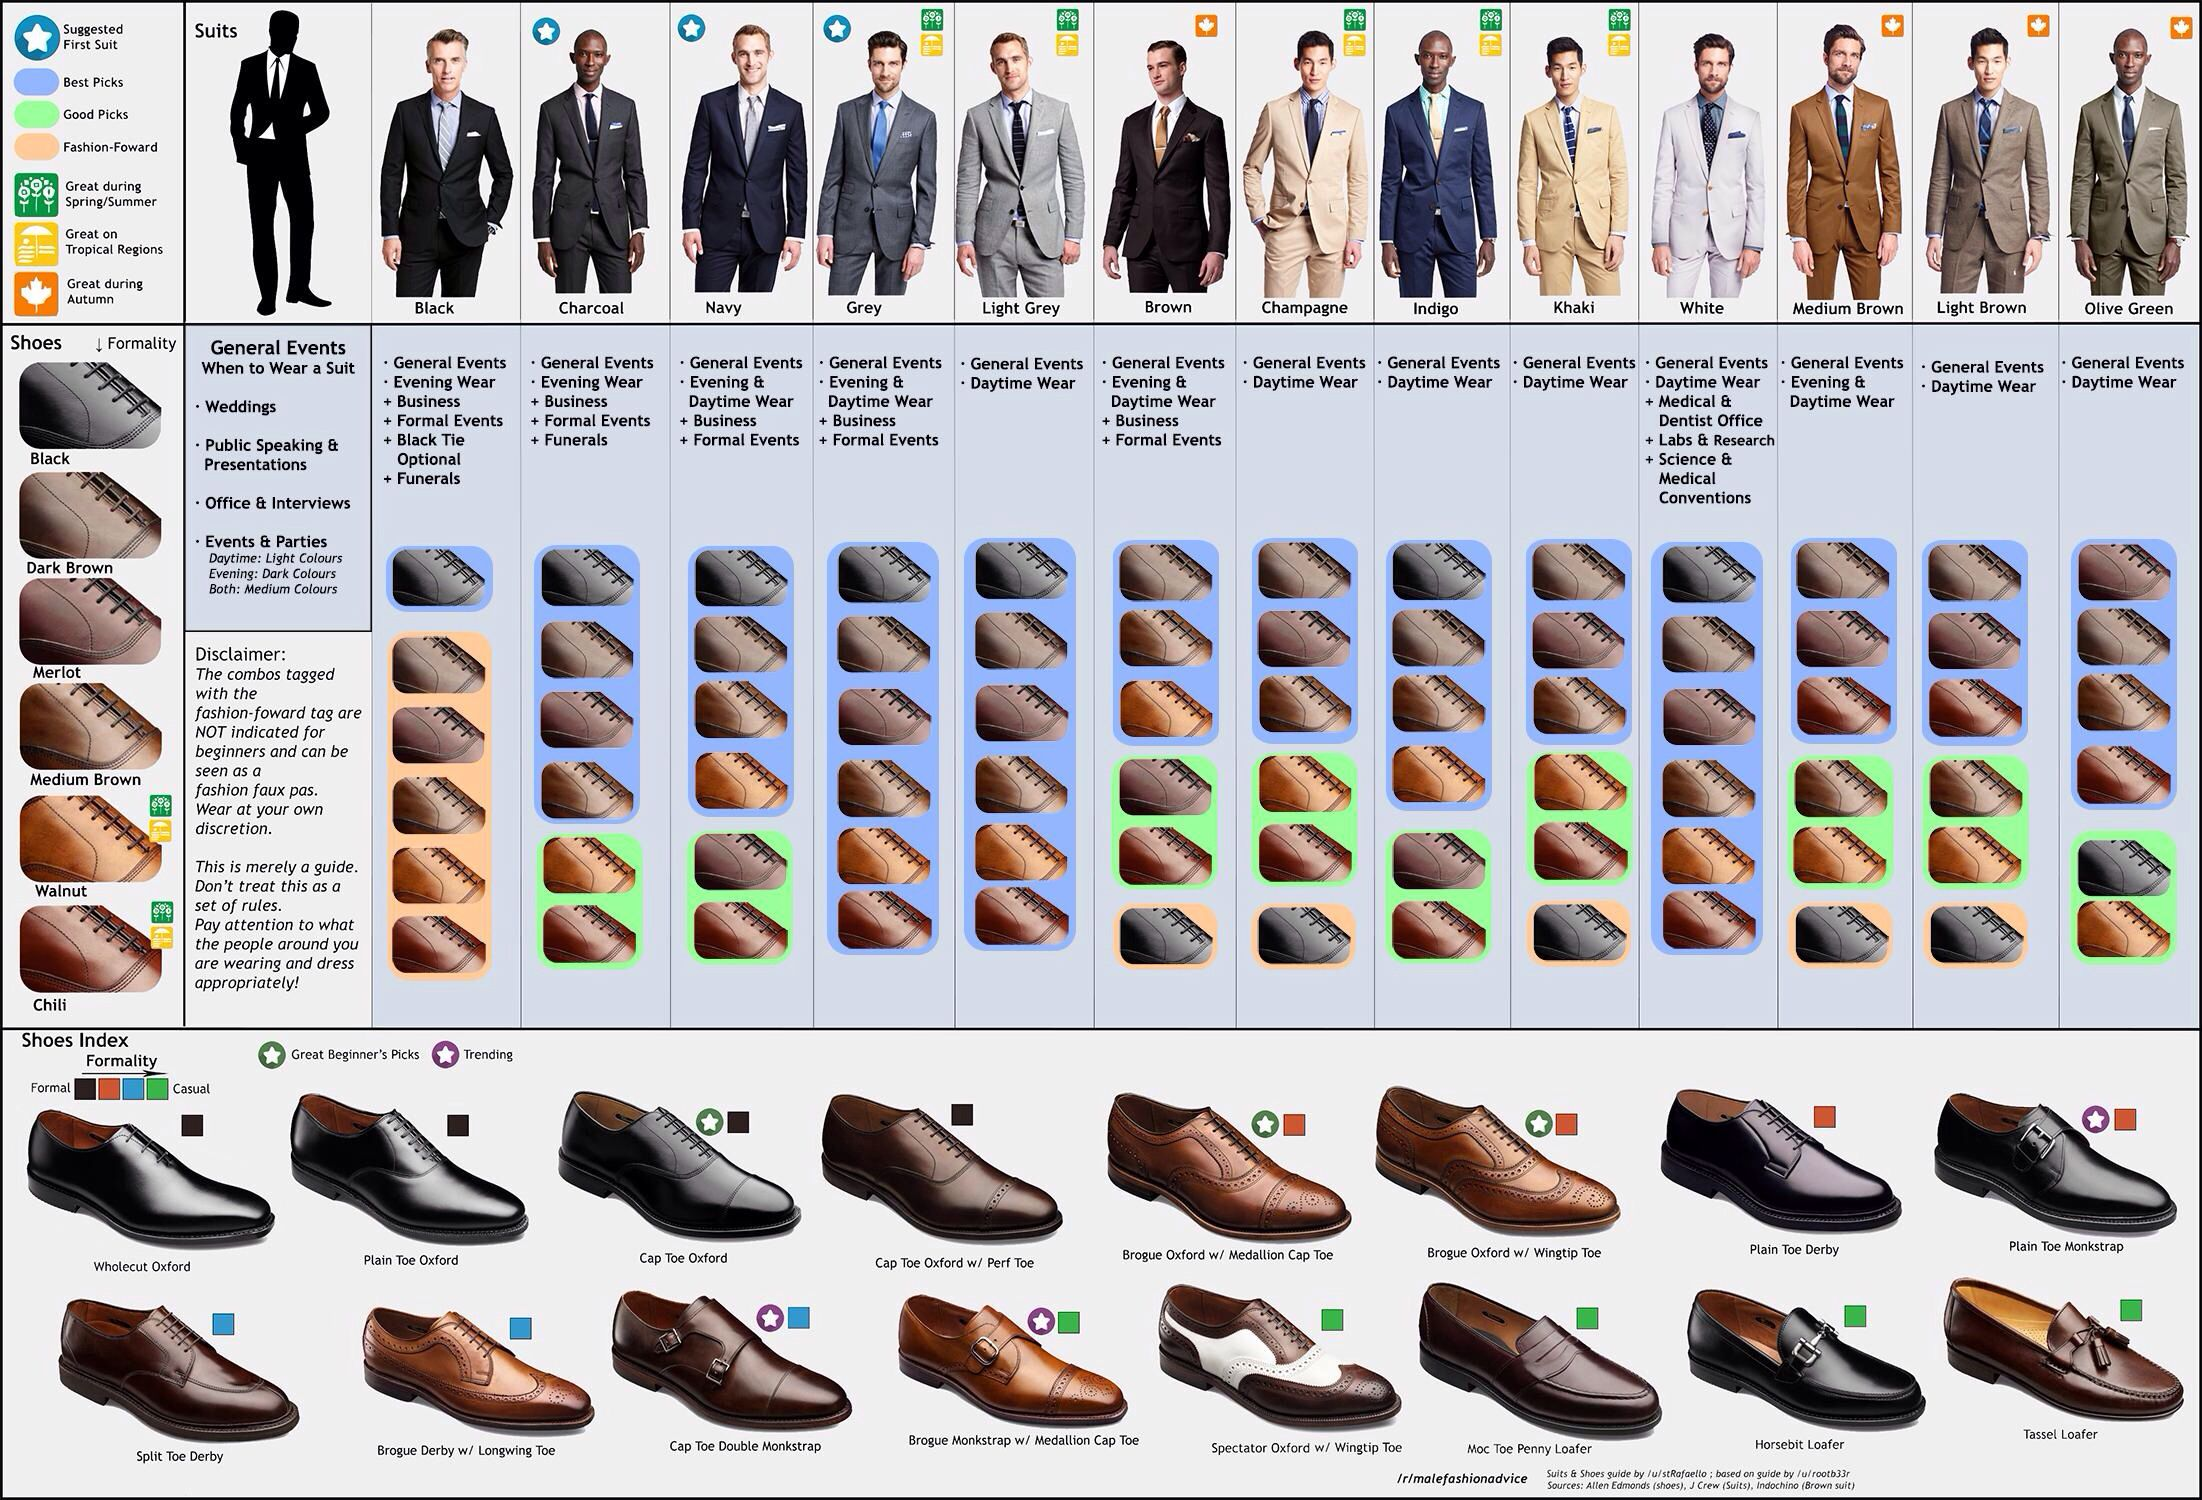 Suit \u0026 Shoes color matching chart in 2020